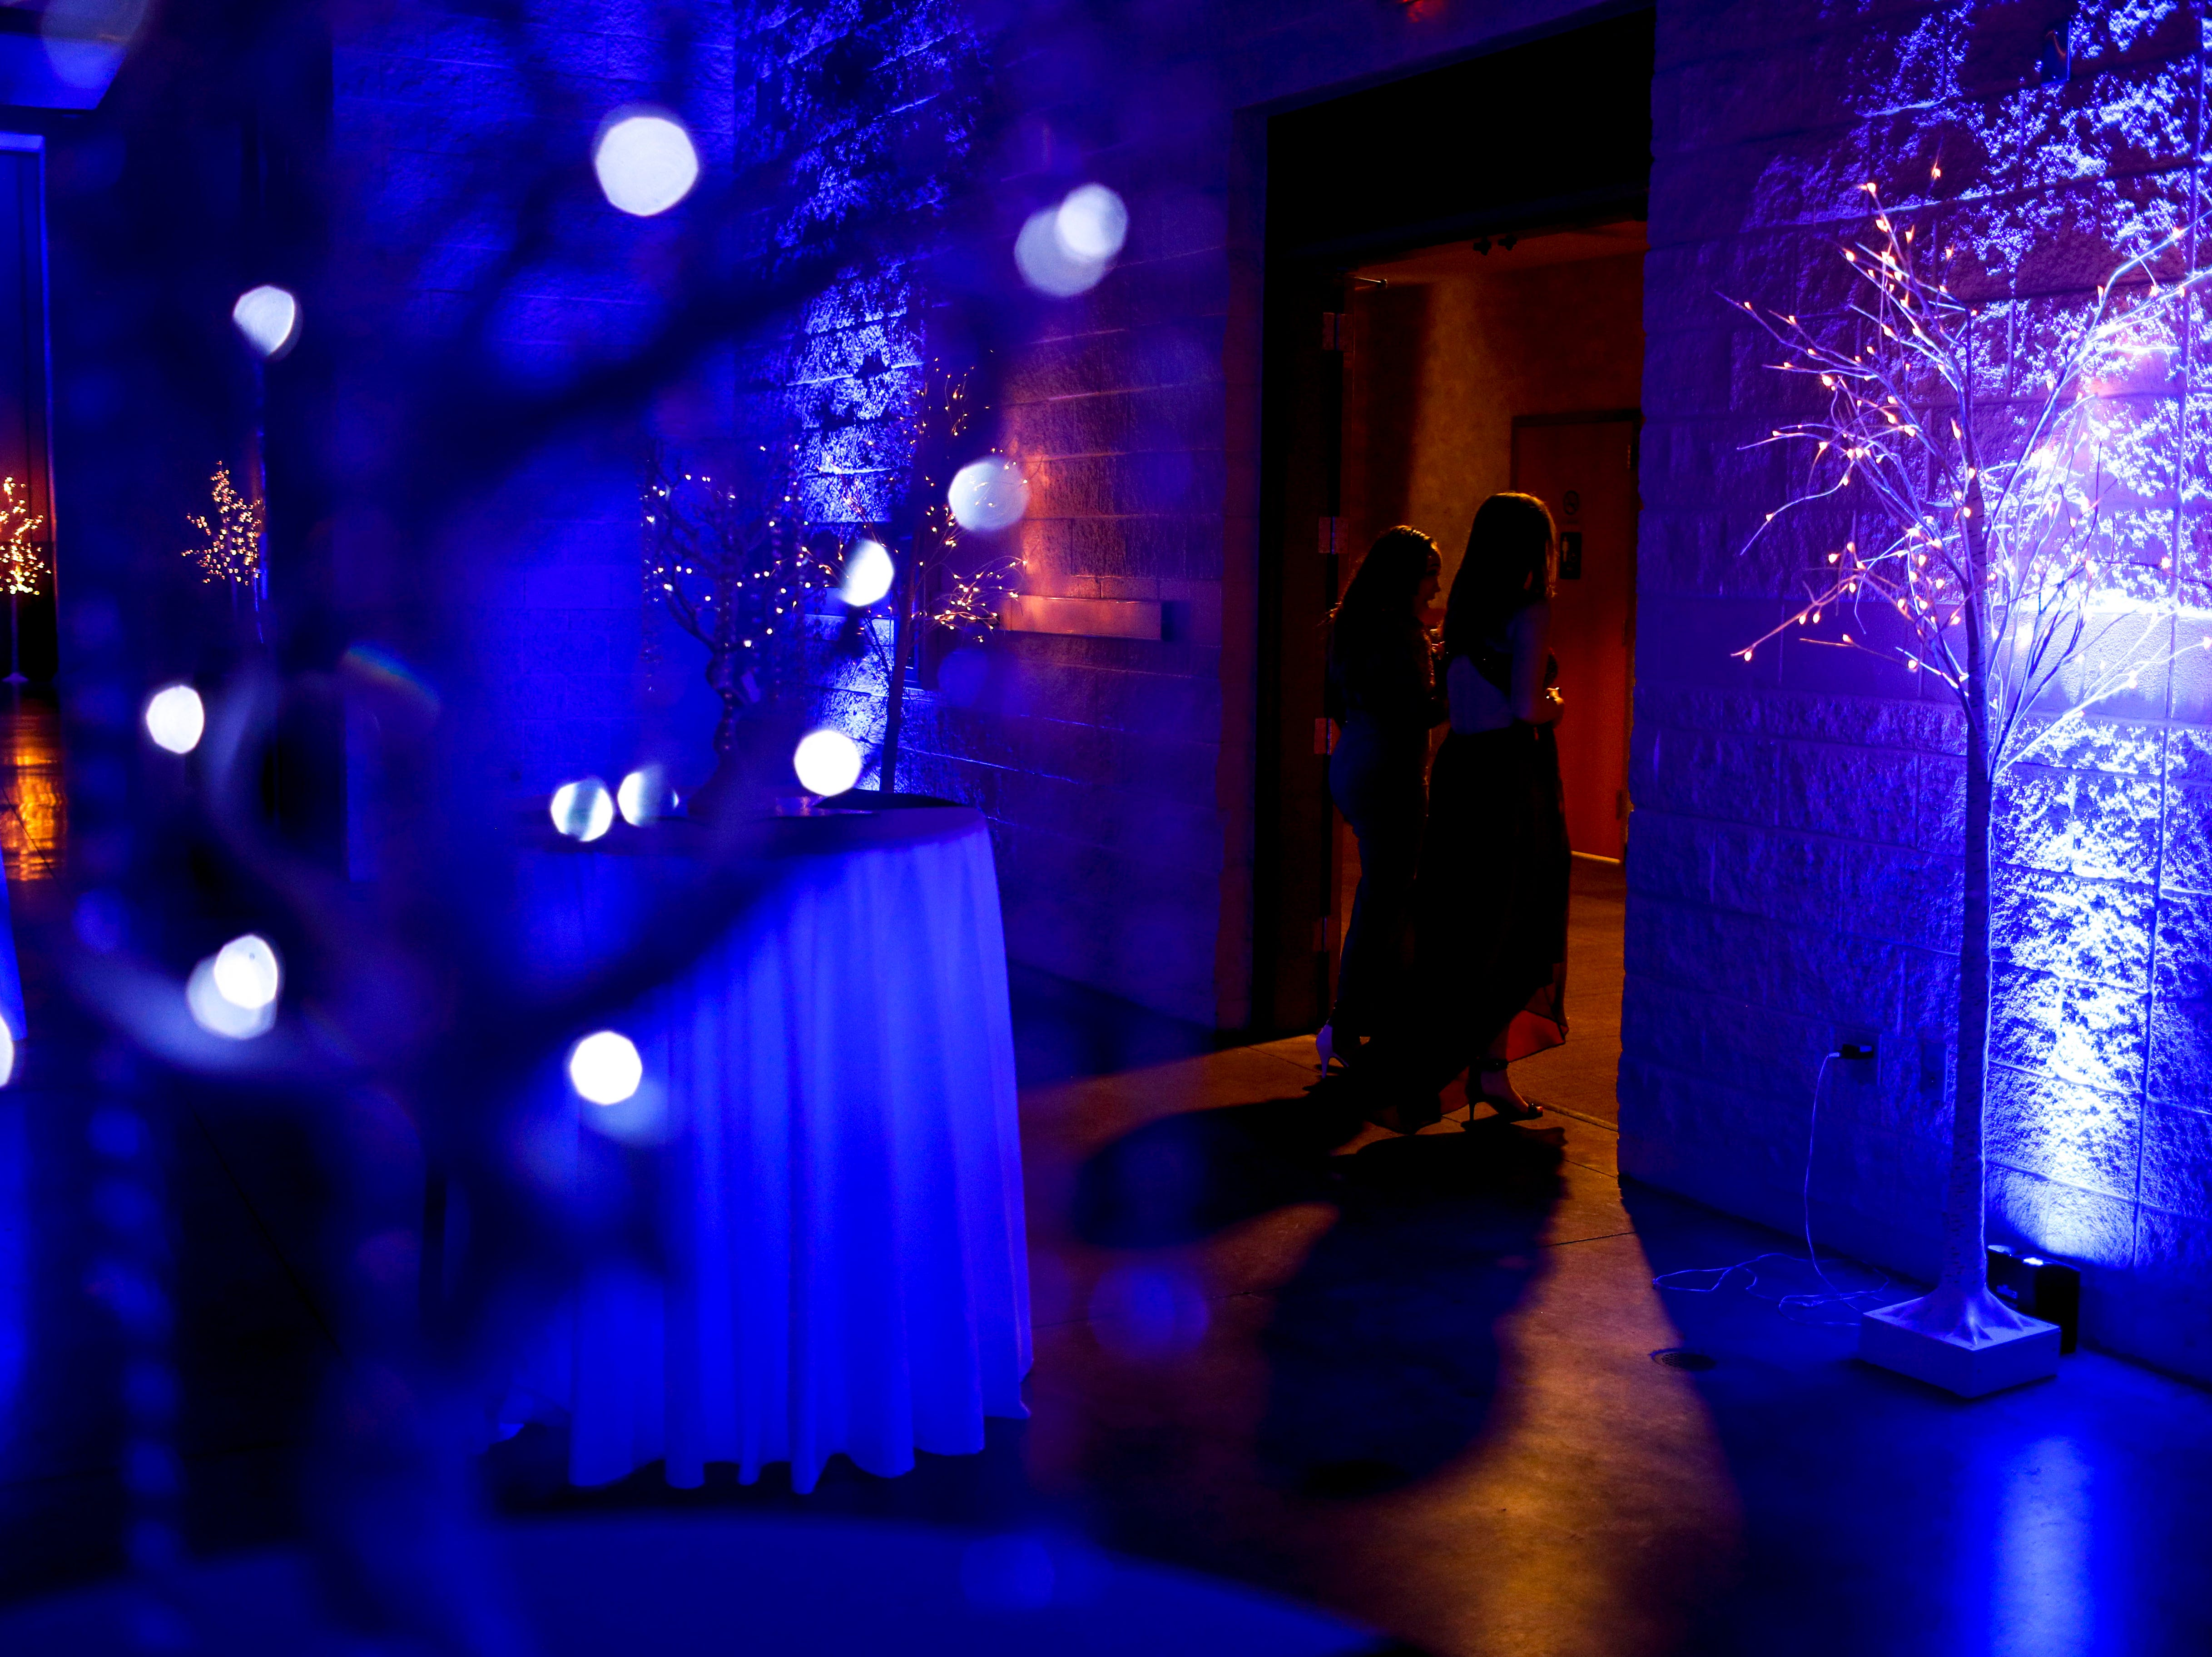 Students exit the hall during Clarksville Academy's 2019 prom at The Bruce Convention Center in Hopkinsville, Ky., on Saturday, April 6, 2019.